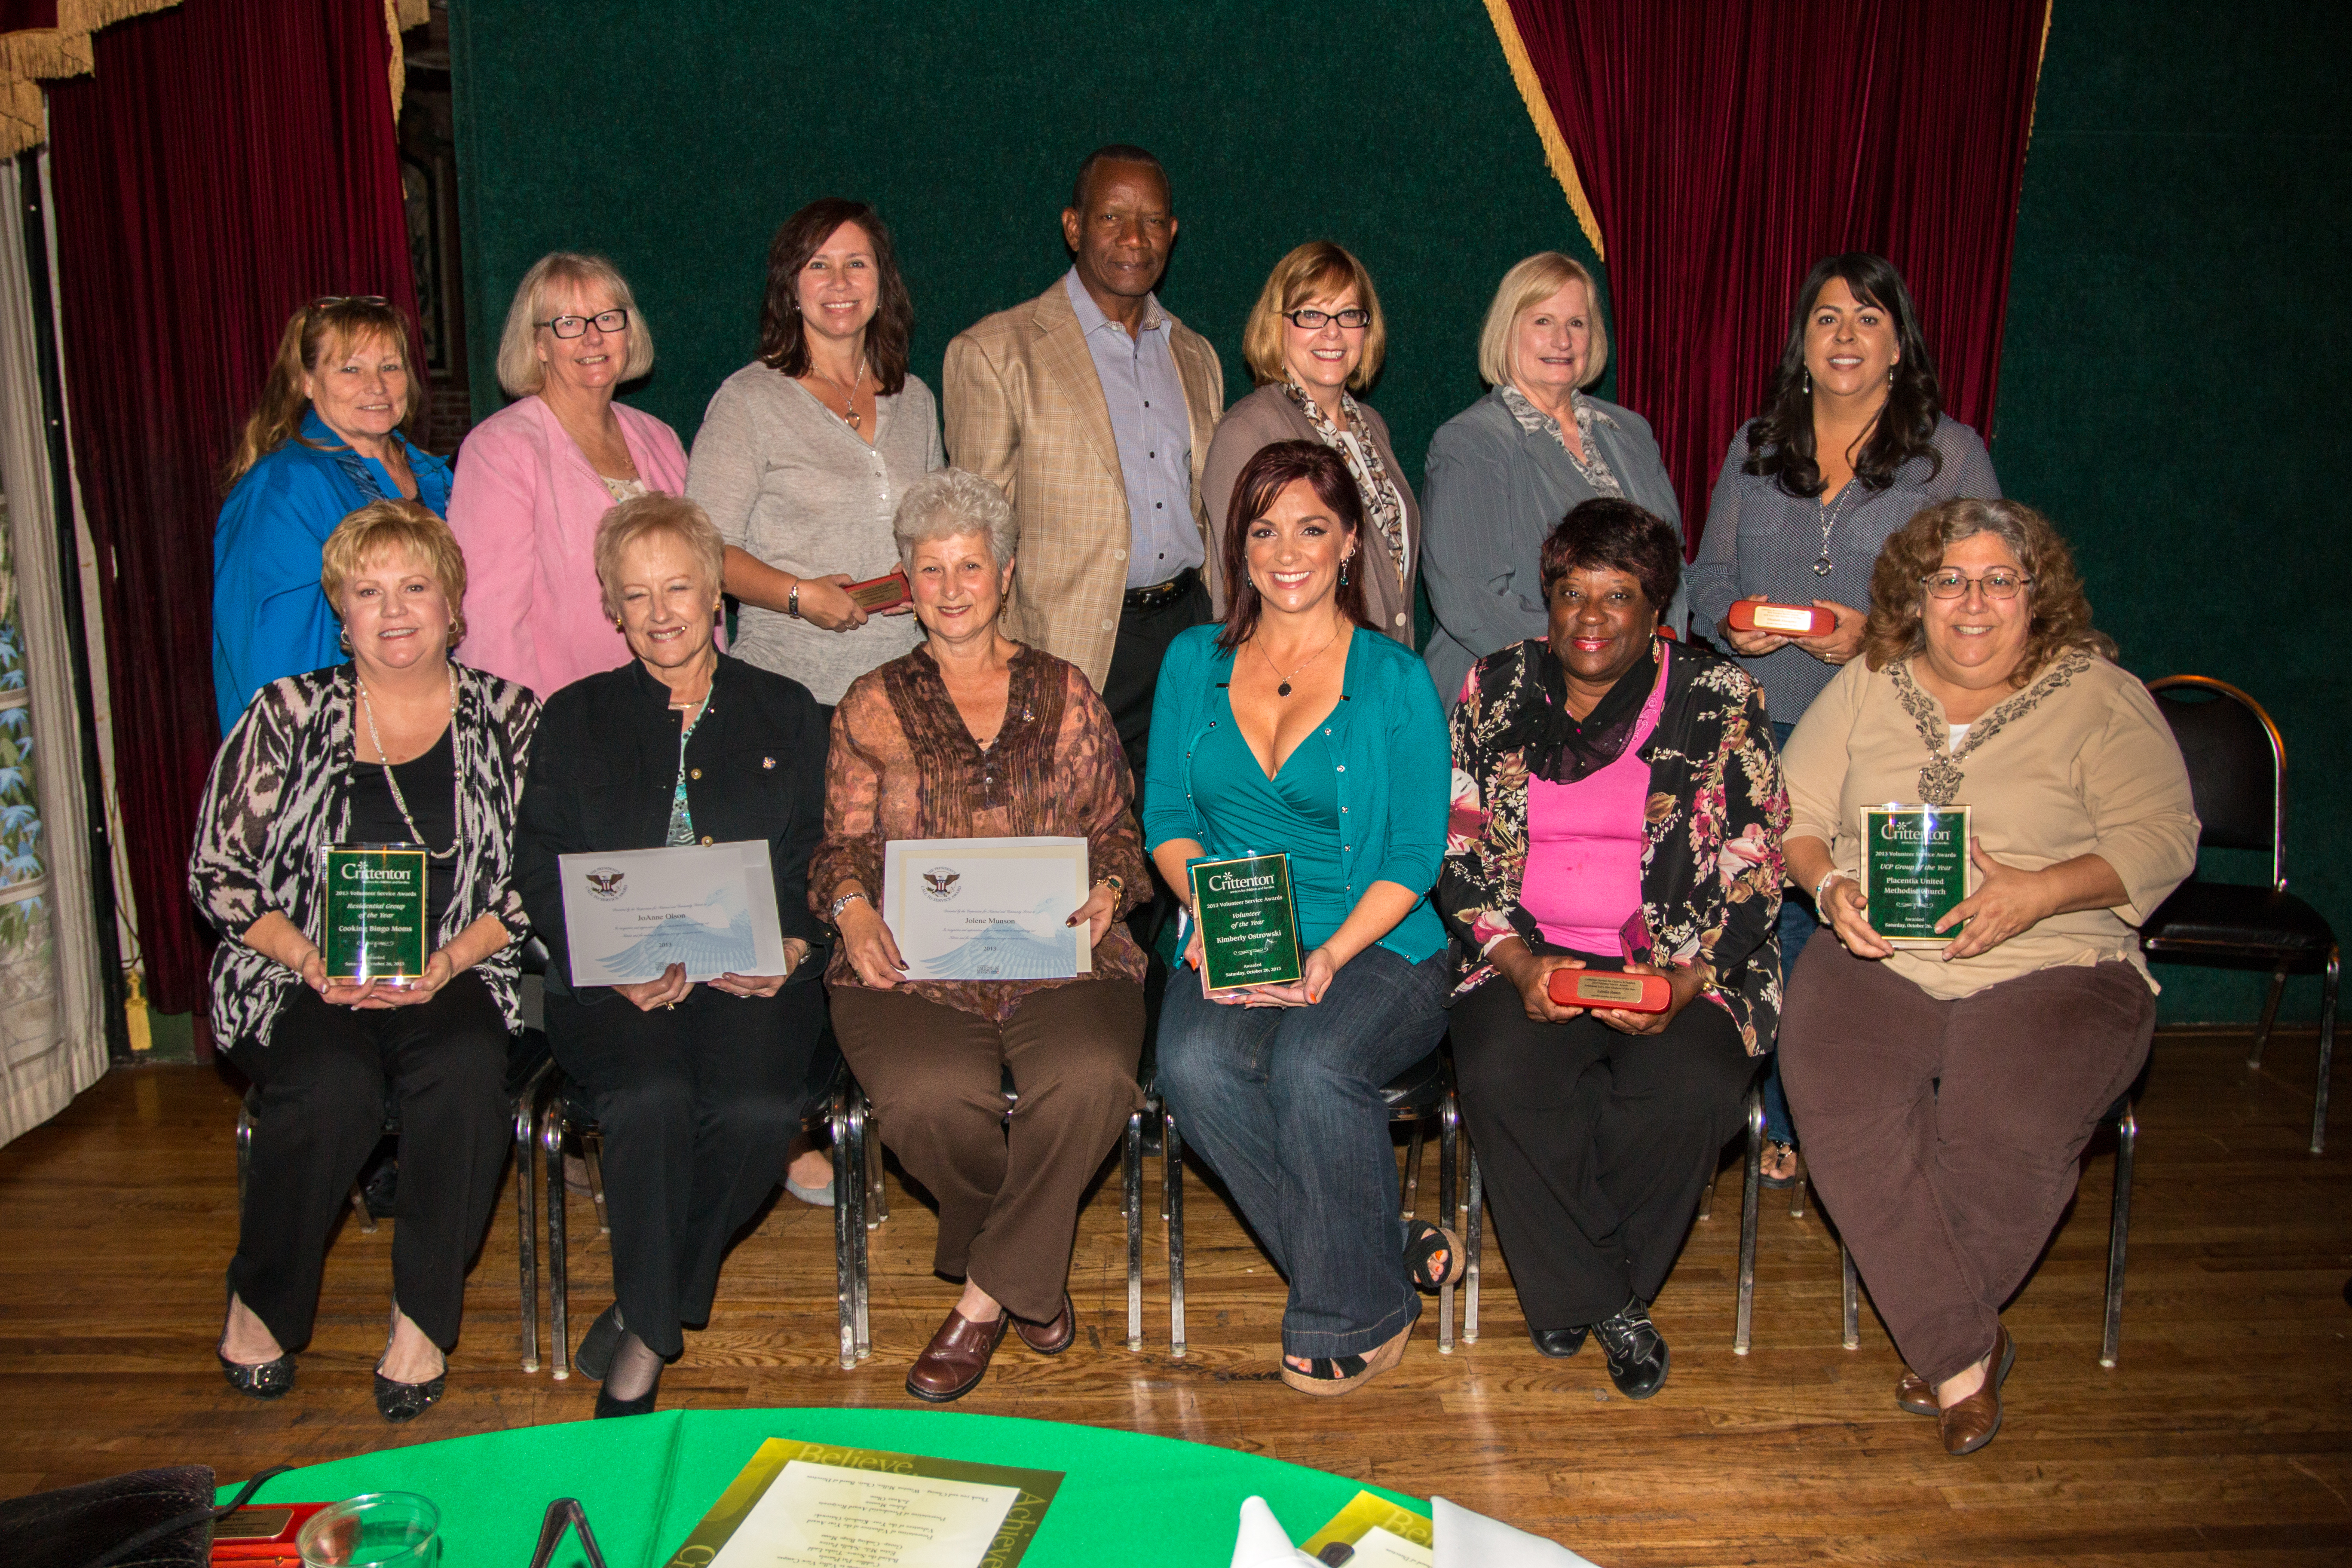 2013 Crittenton Volunteer Award Winners for Public Service.